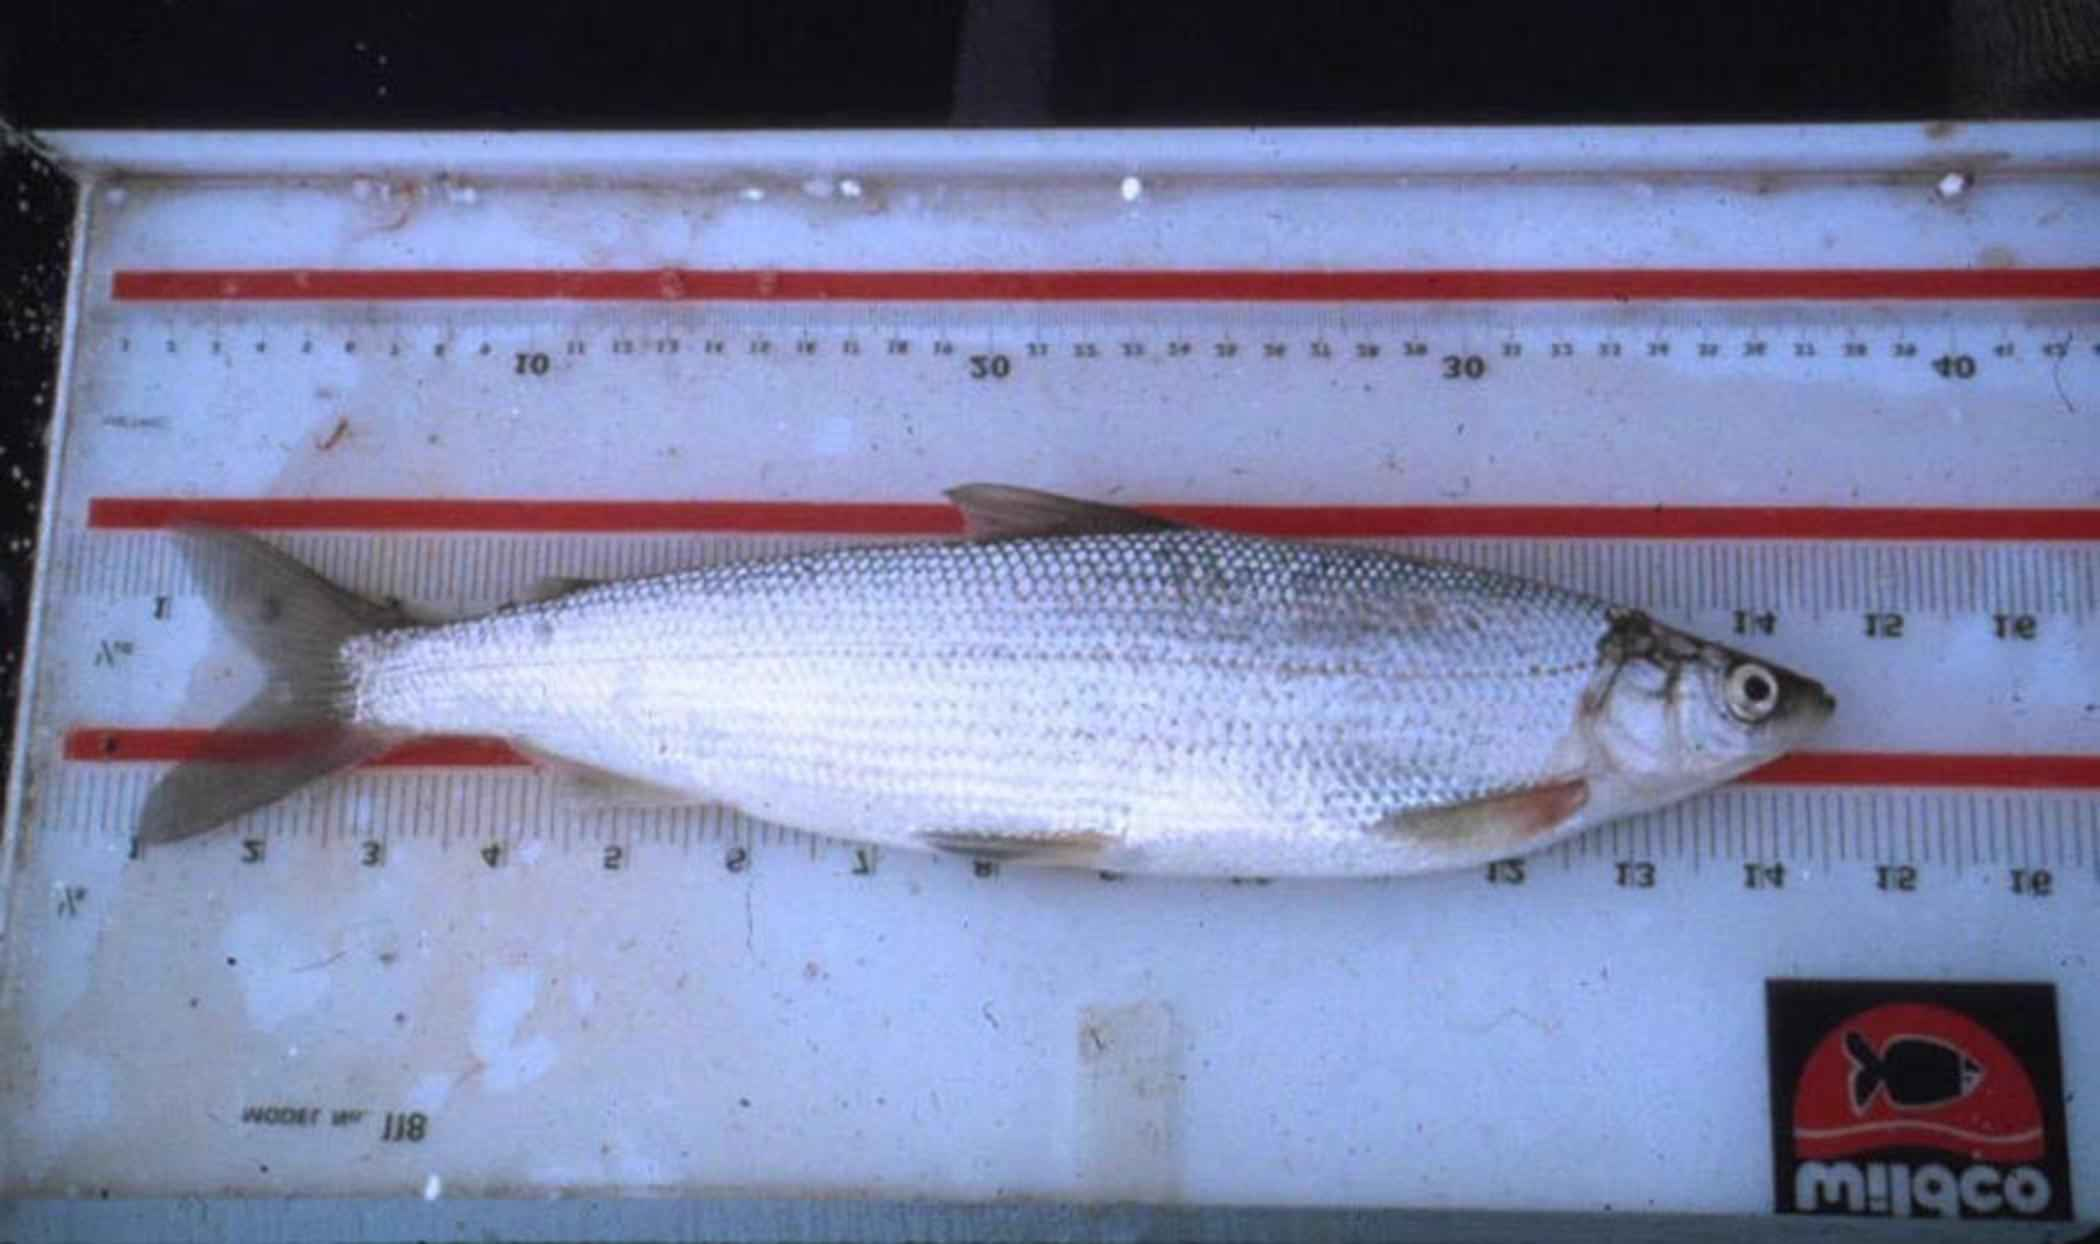 File:Least cisco fish coregonus sardinella.jpg - Wikimedia Commons: commons.wikimedia.org/wiki/file:least_cisco_fish_coregonus...